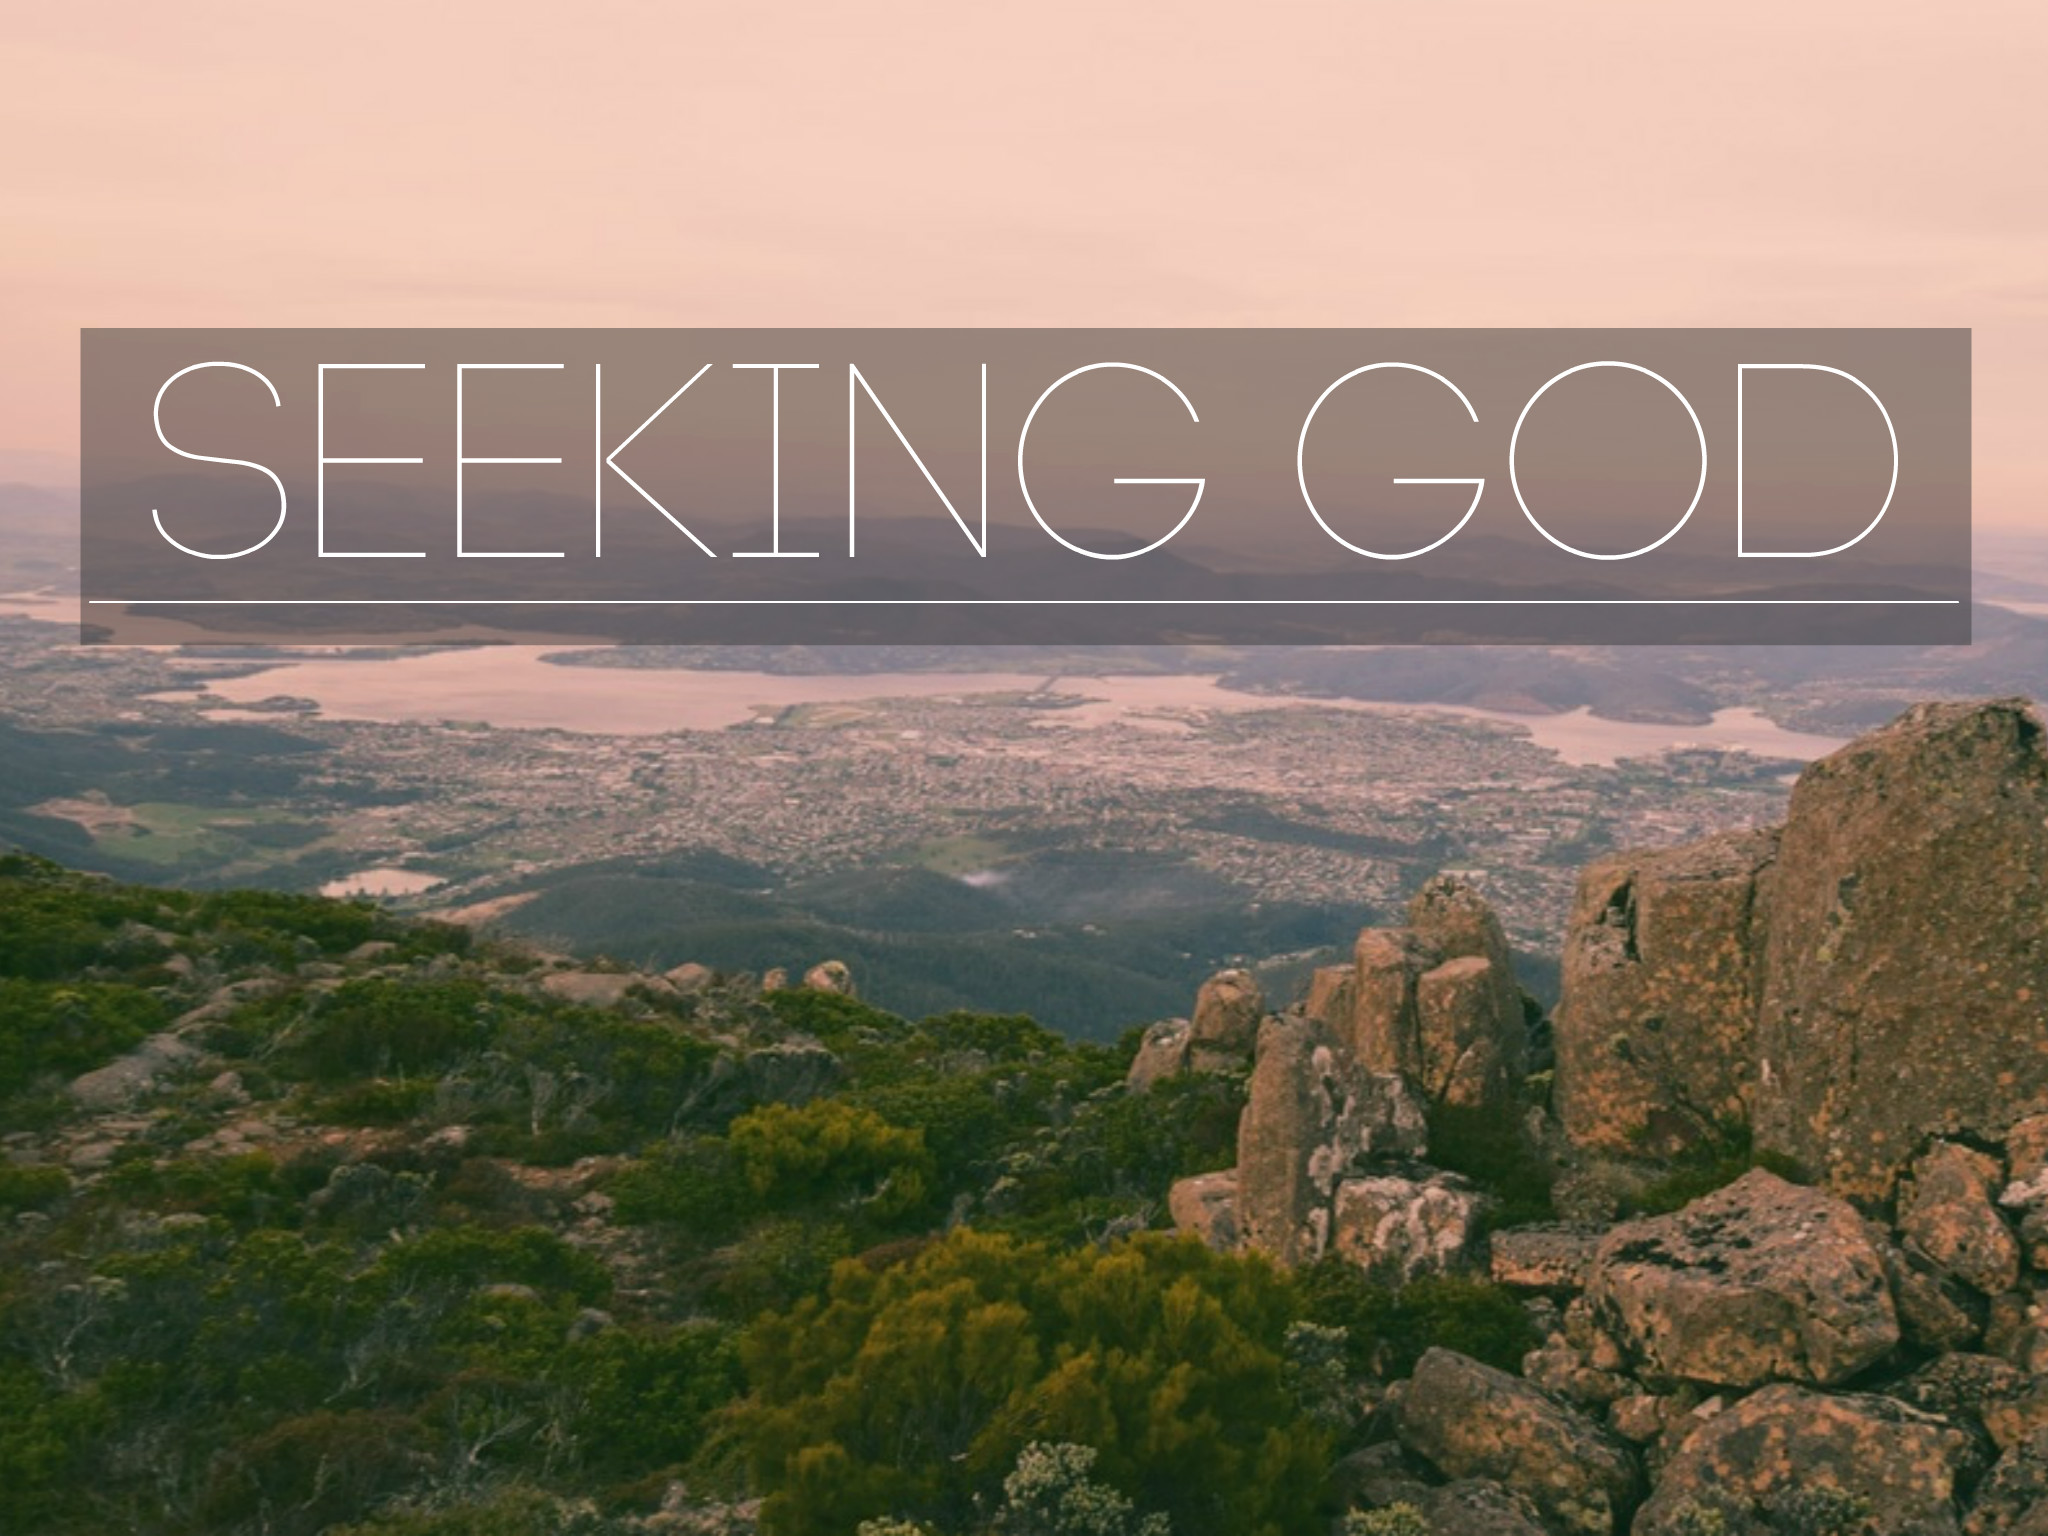 seeking god.jpg